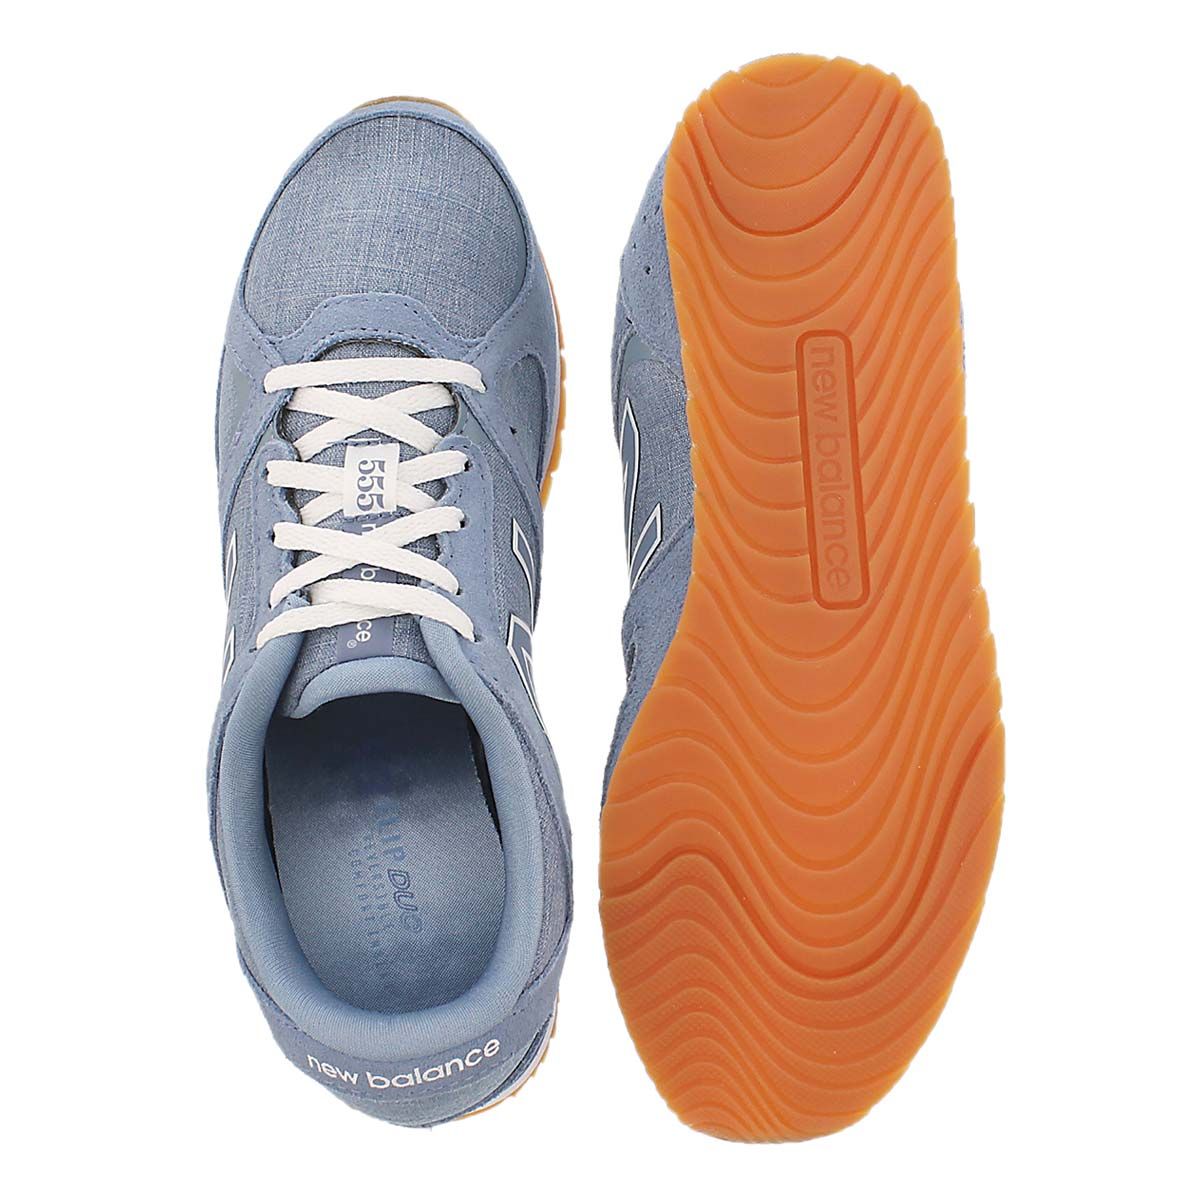 Lds 555 light blue lace up sneaker